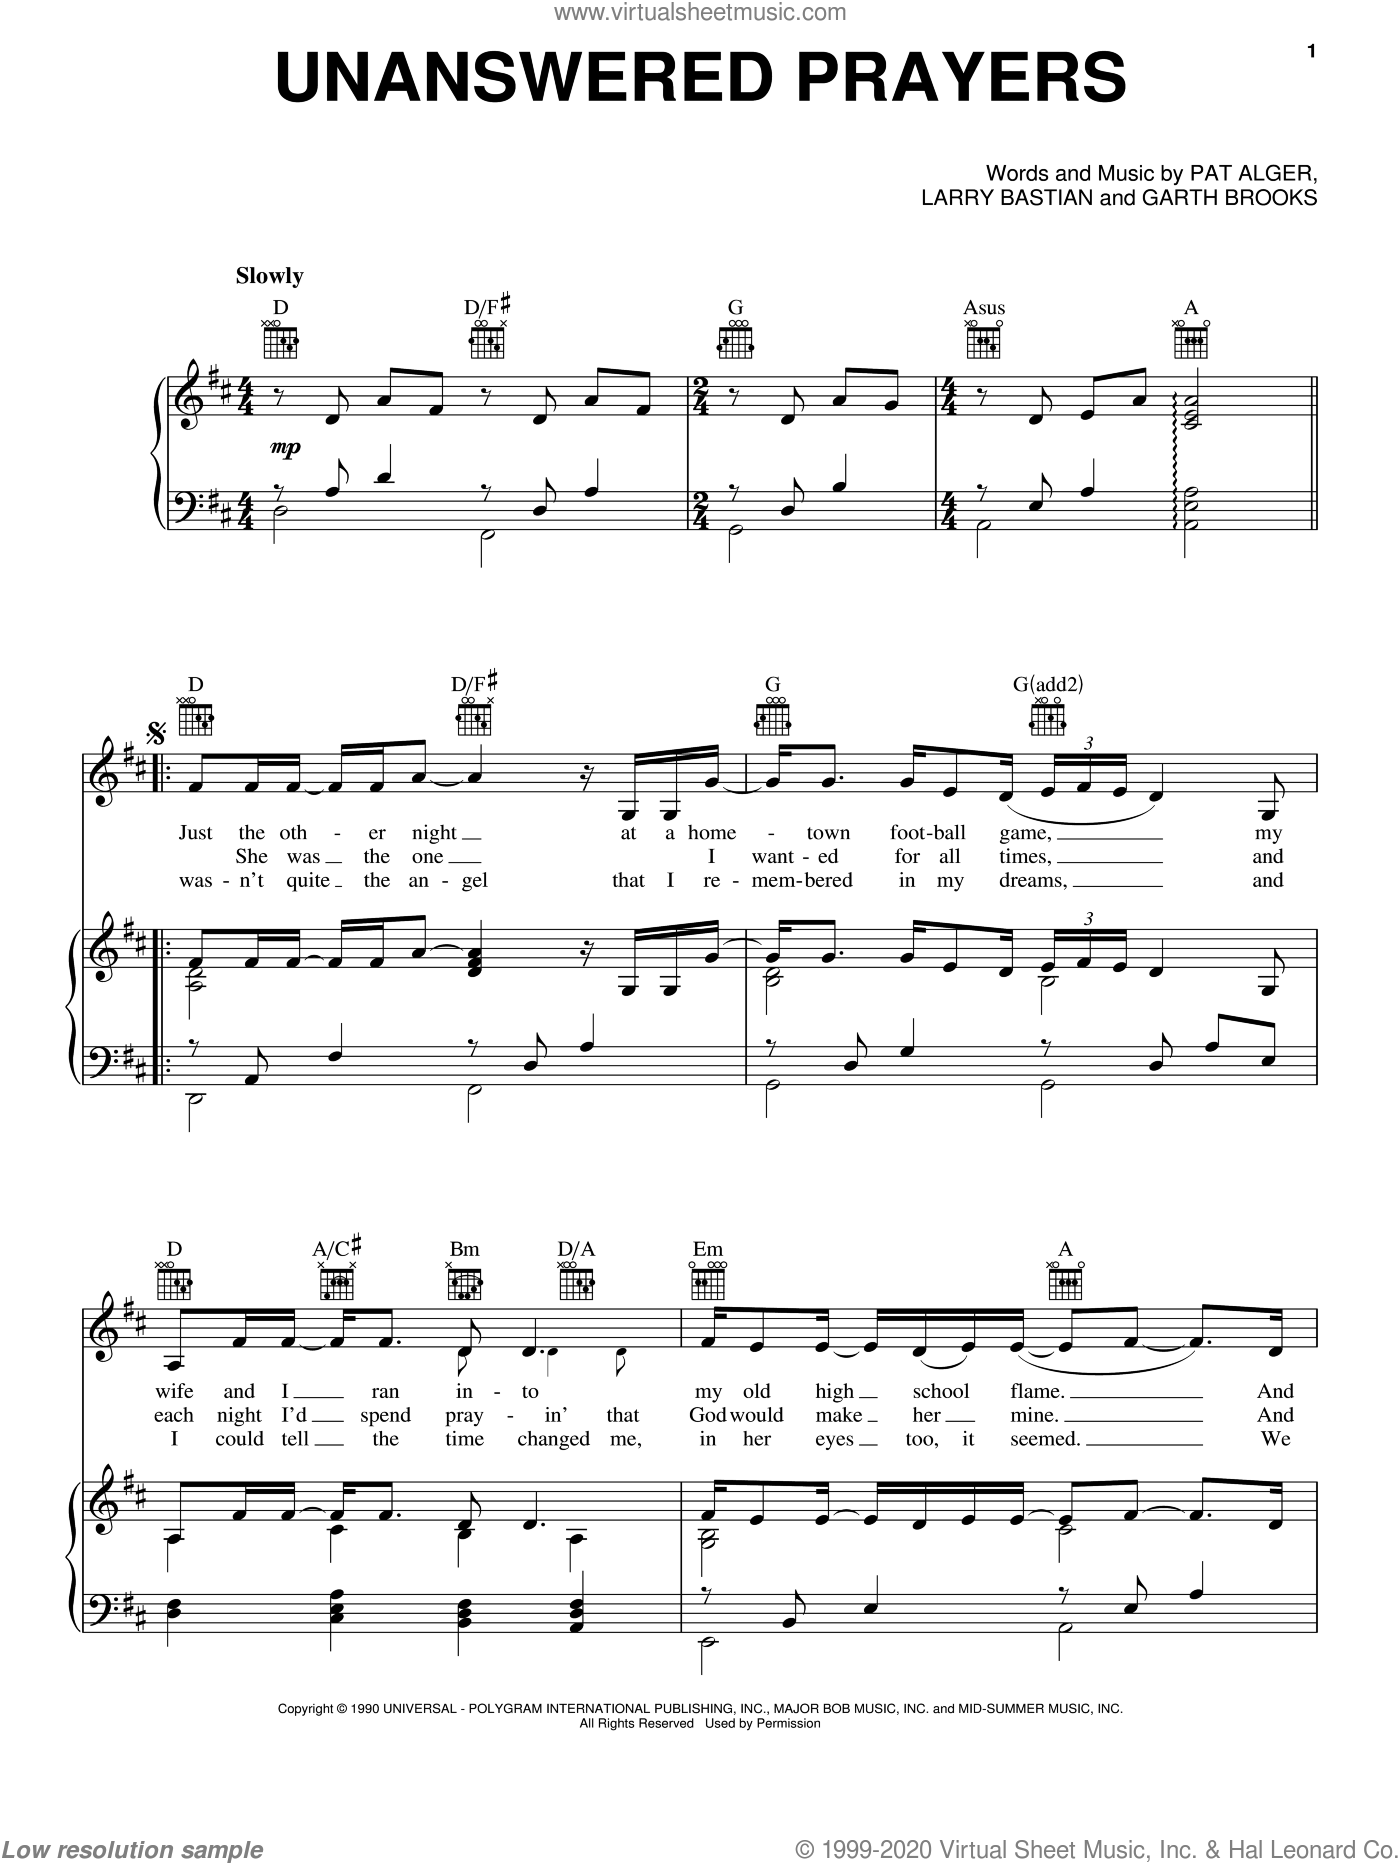 Unanswered Prayers sheet music for voice, piano or guitar by Garth Brooks, Larry Bastian and Patrick Alger, intermediate skill level